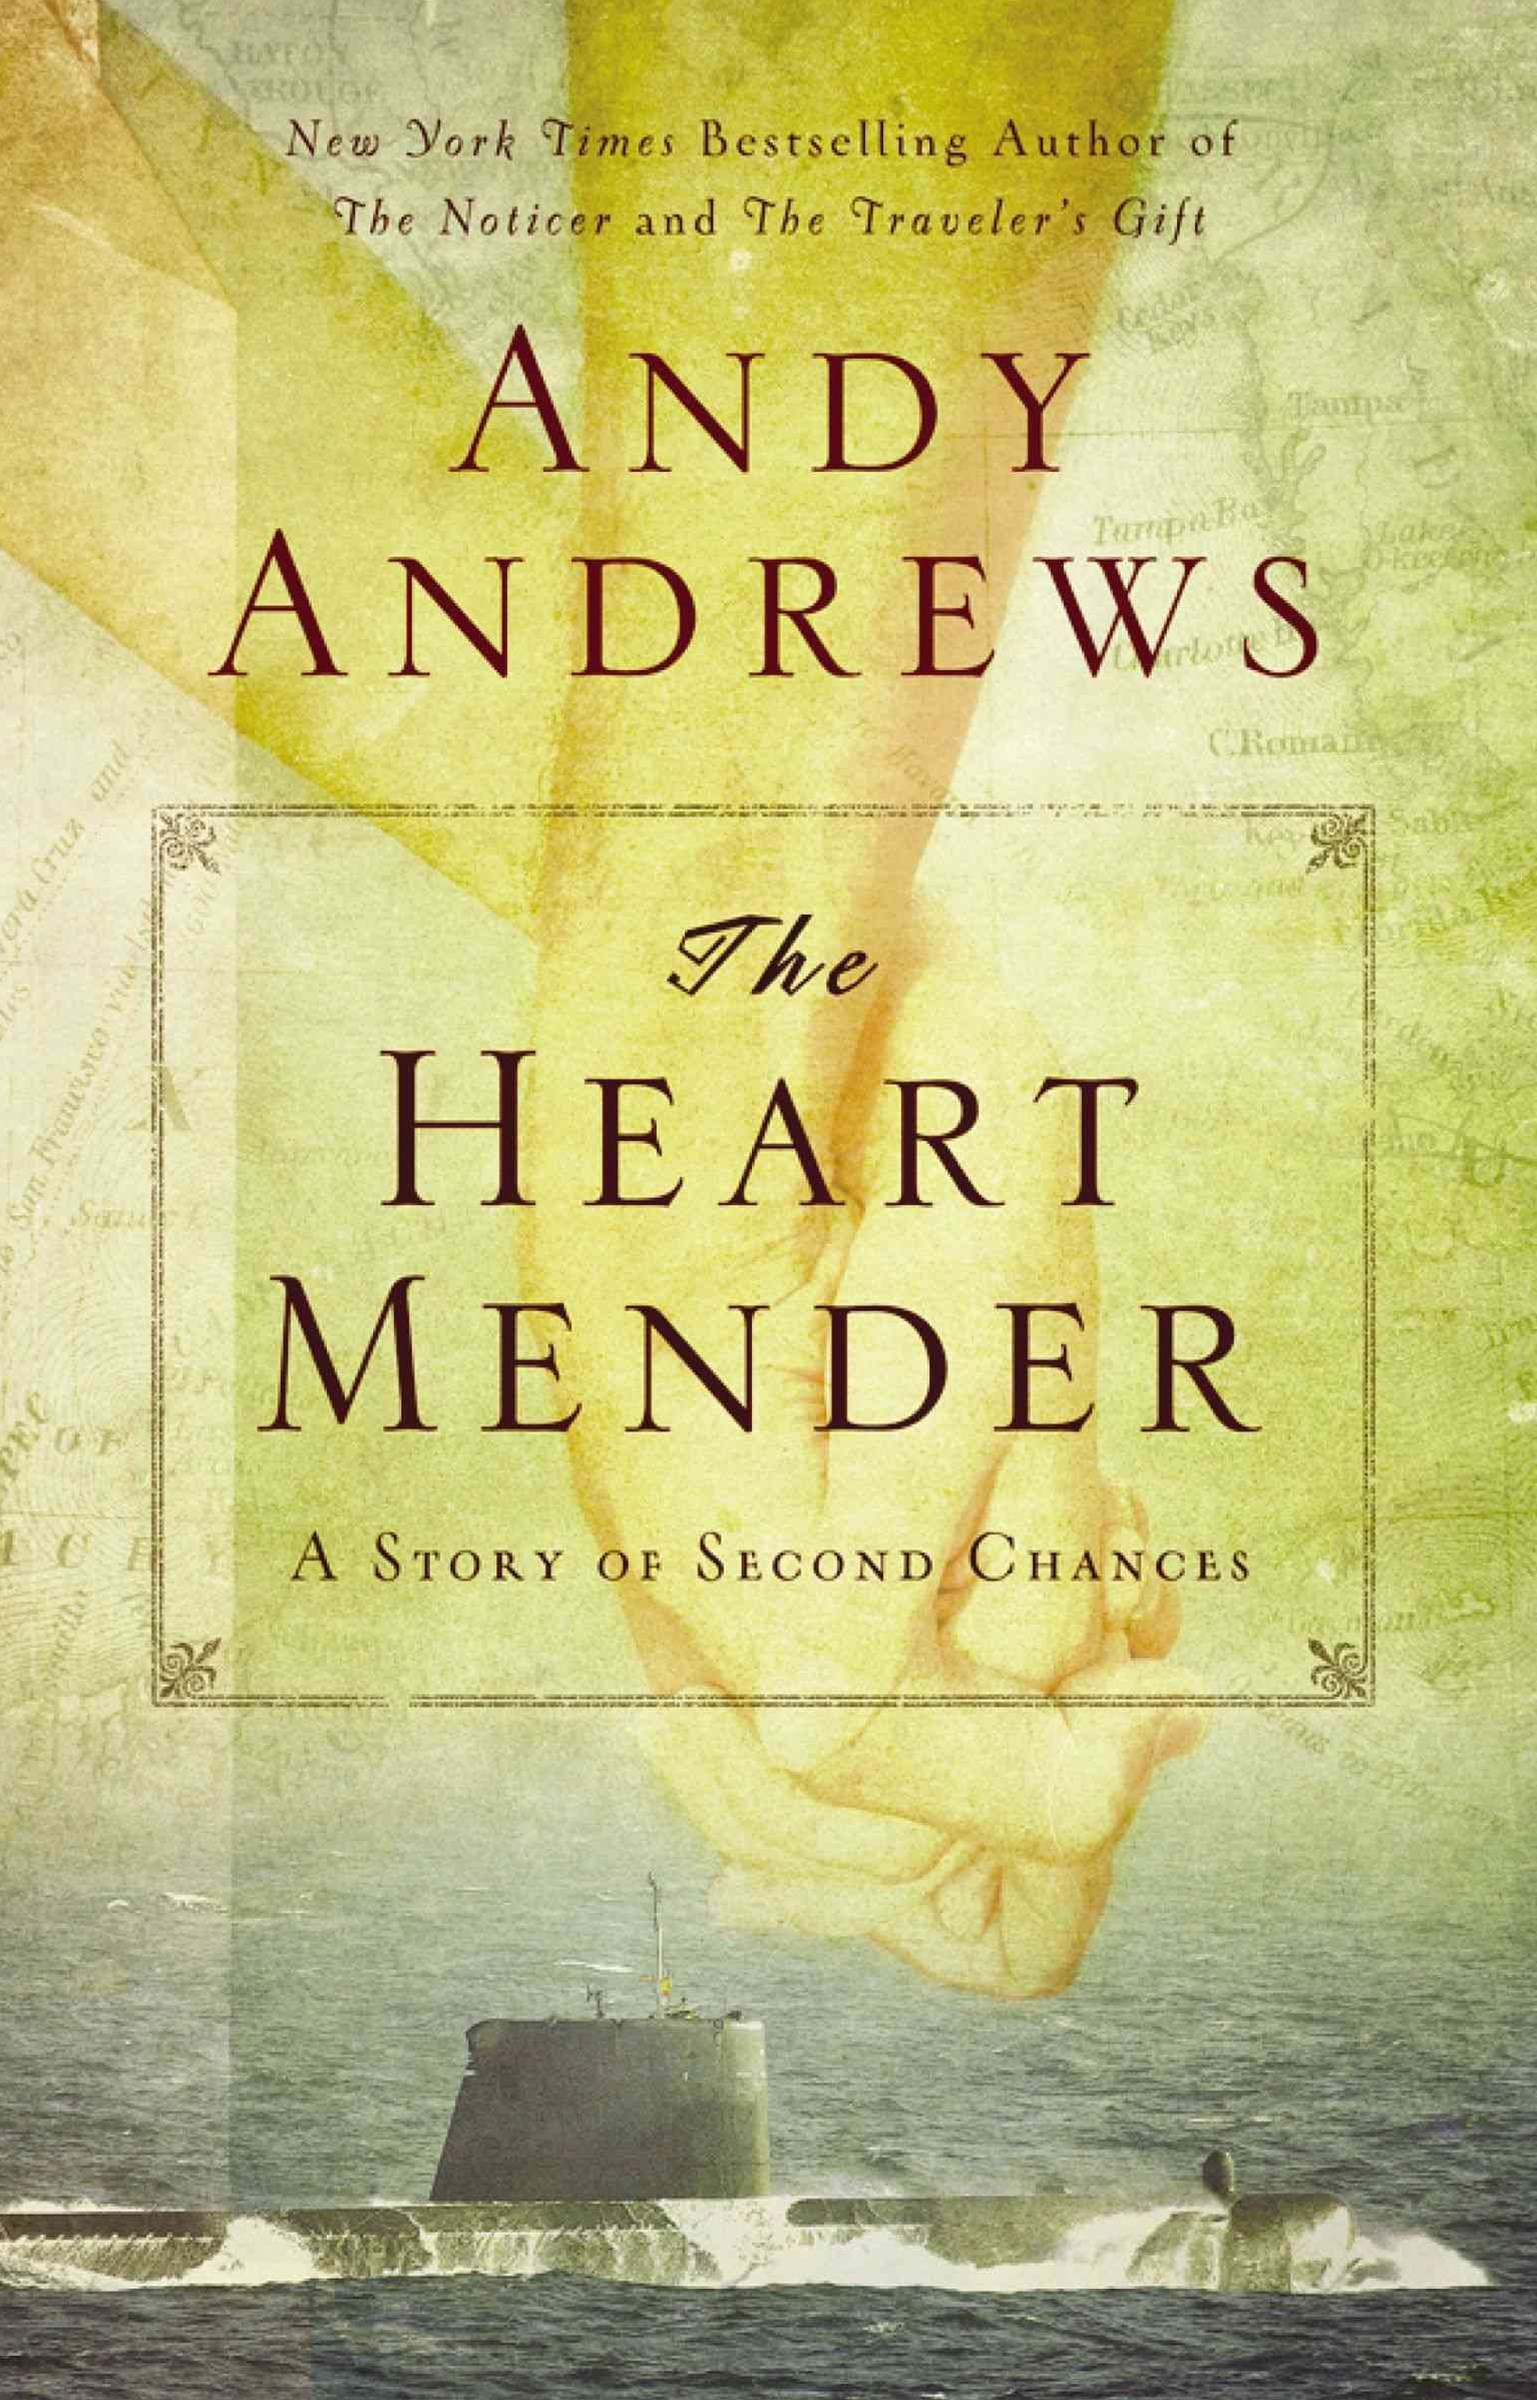 The Heart Mender: A Story of Second Chances Humanity